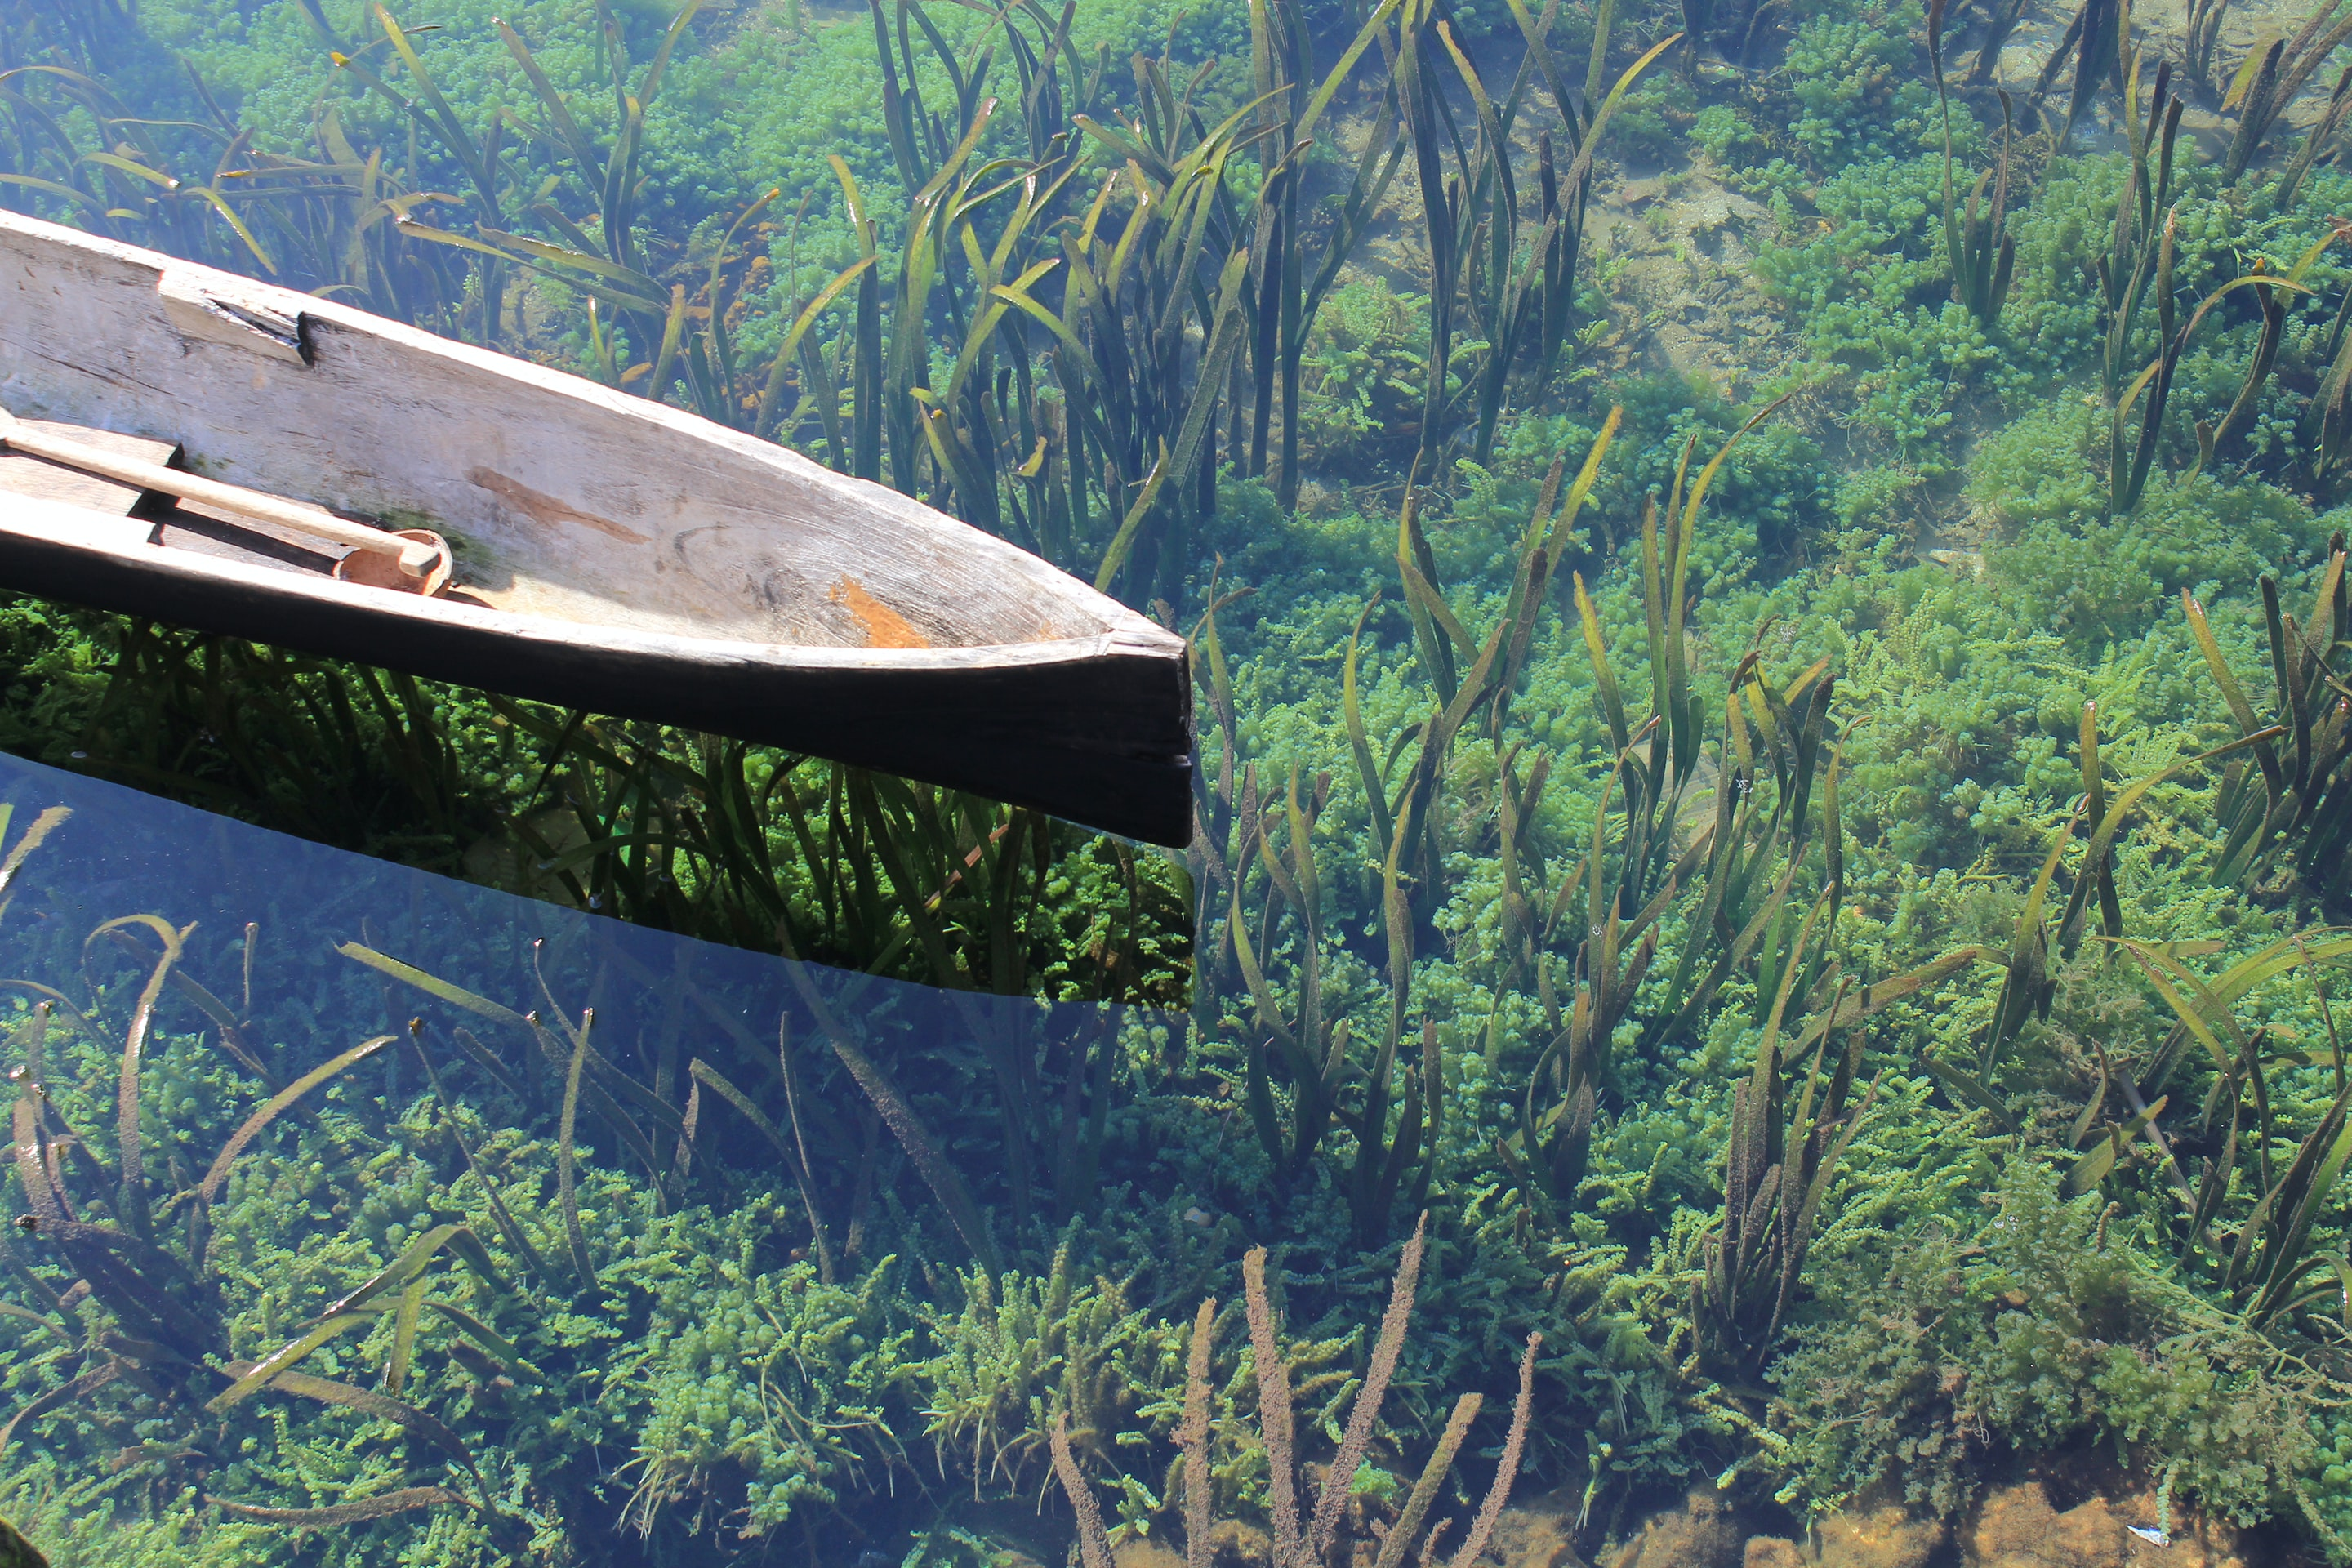 black wooden canoe on body of water